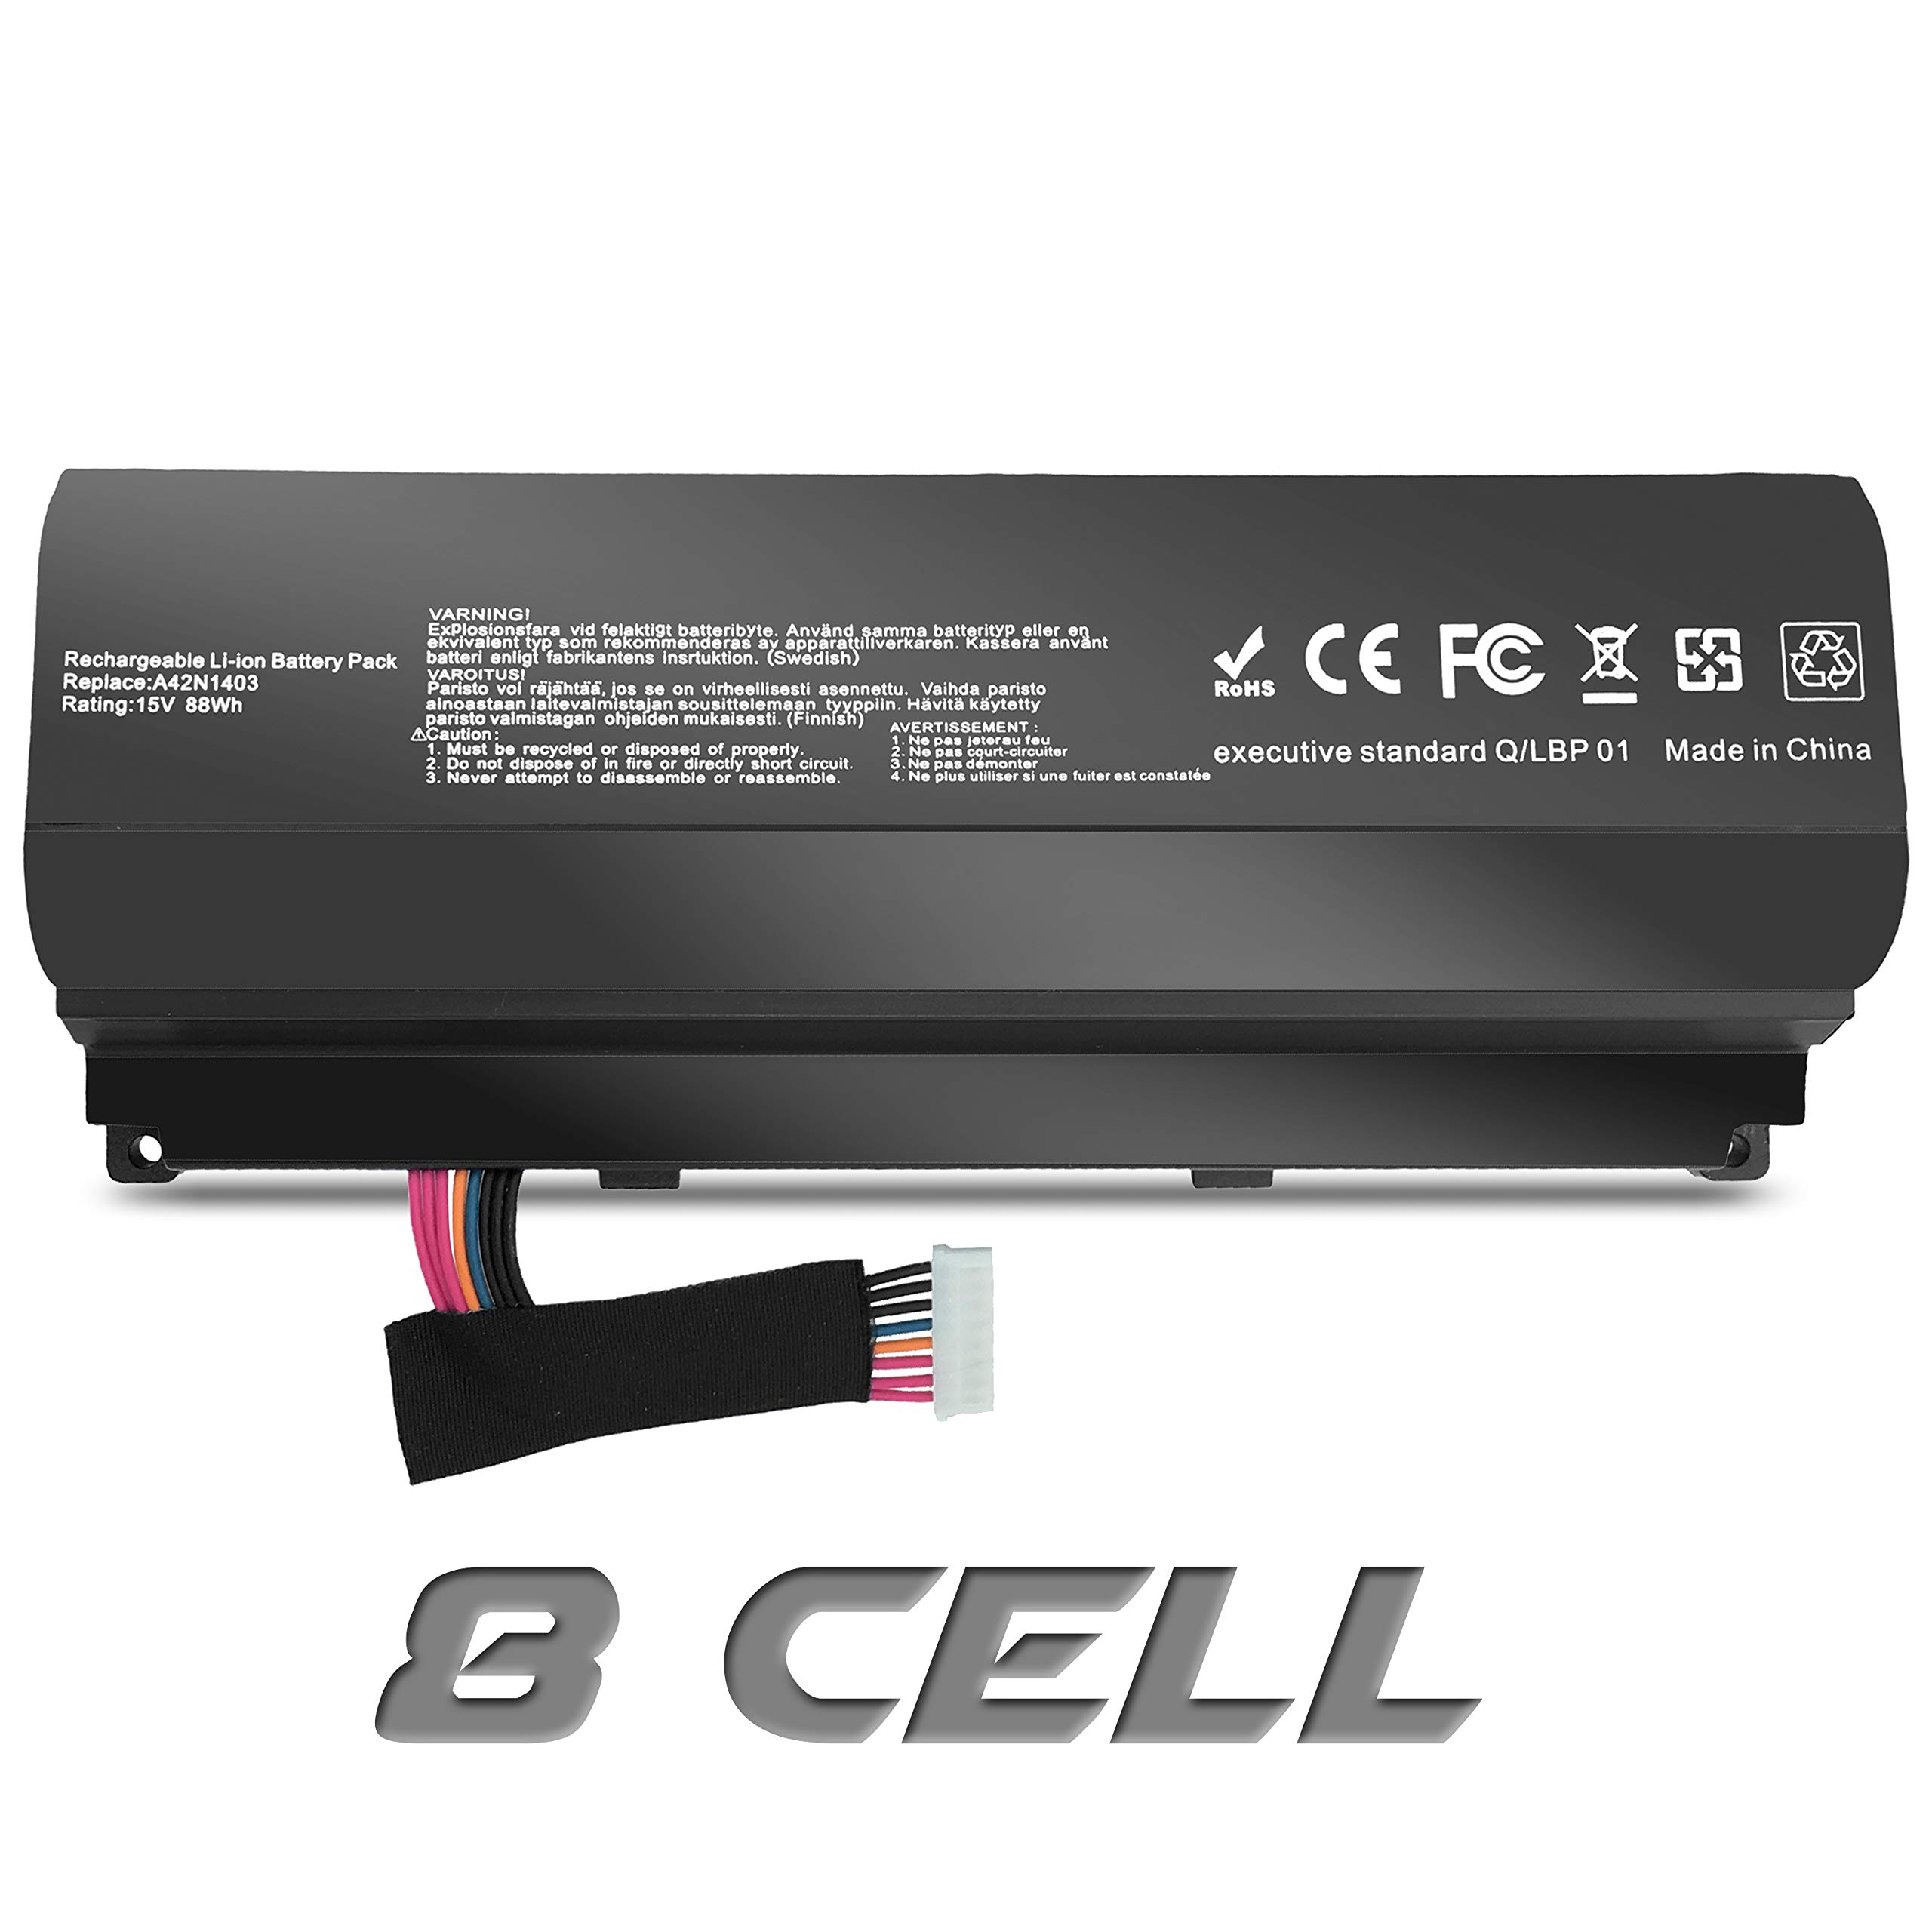 A42LM93 A42N1403 Laptop Battery Replacment for ASUS ROG G751J-BHI7T25 G751JY G751JT G751JM G751JL G751J G751 GFX71JT GFX71JM GFX71JY GFX71JY4710 GFX71JY4860 【15V 88Wh】